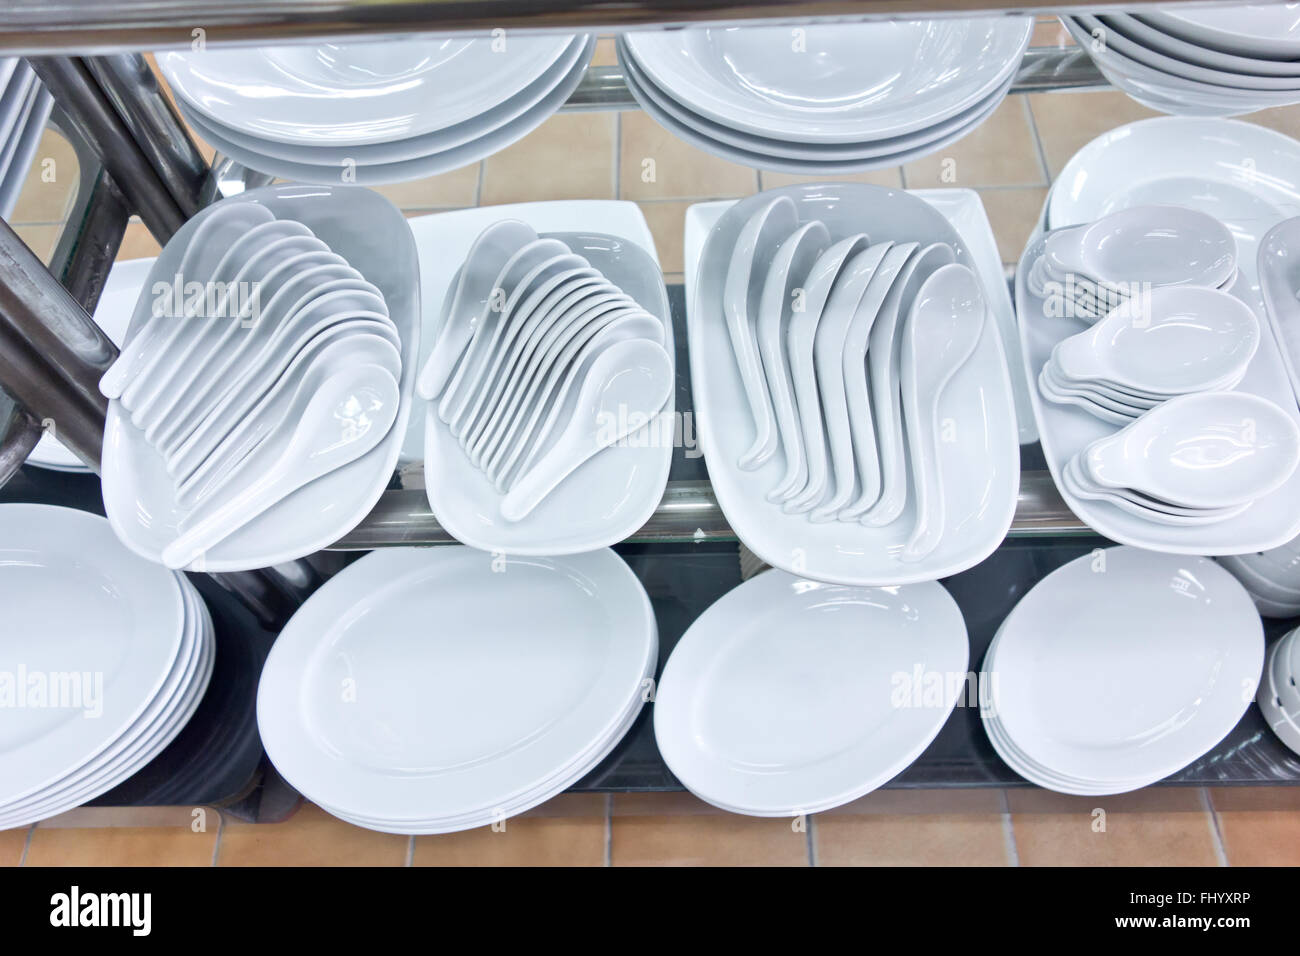 white plates and chinese spoons - Stock Image